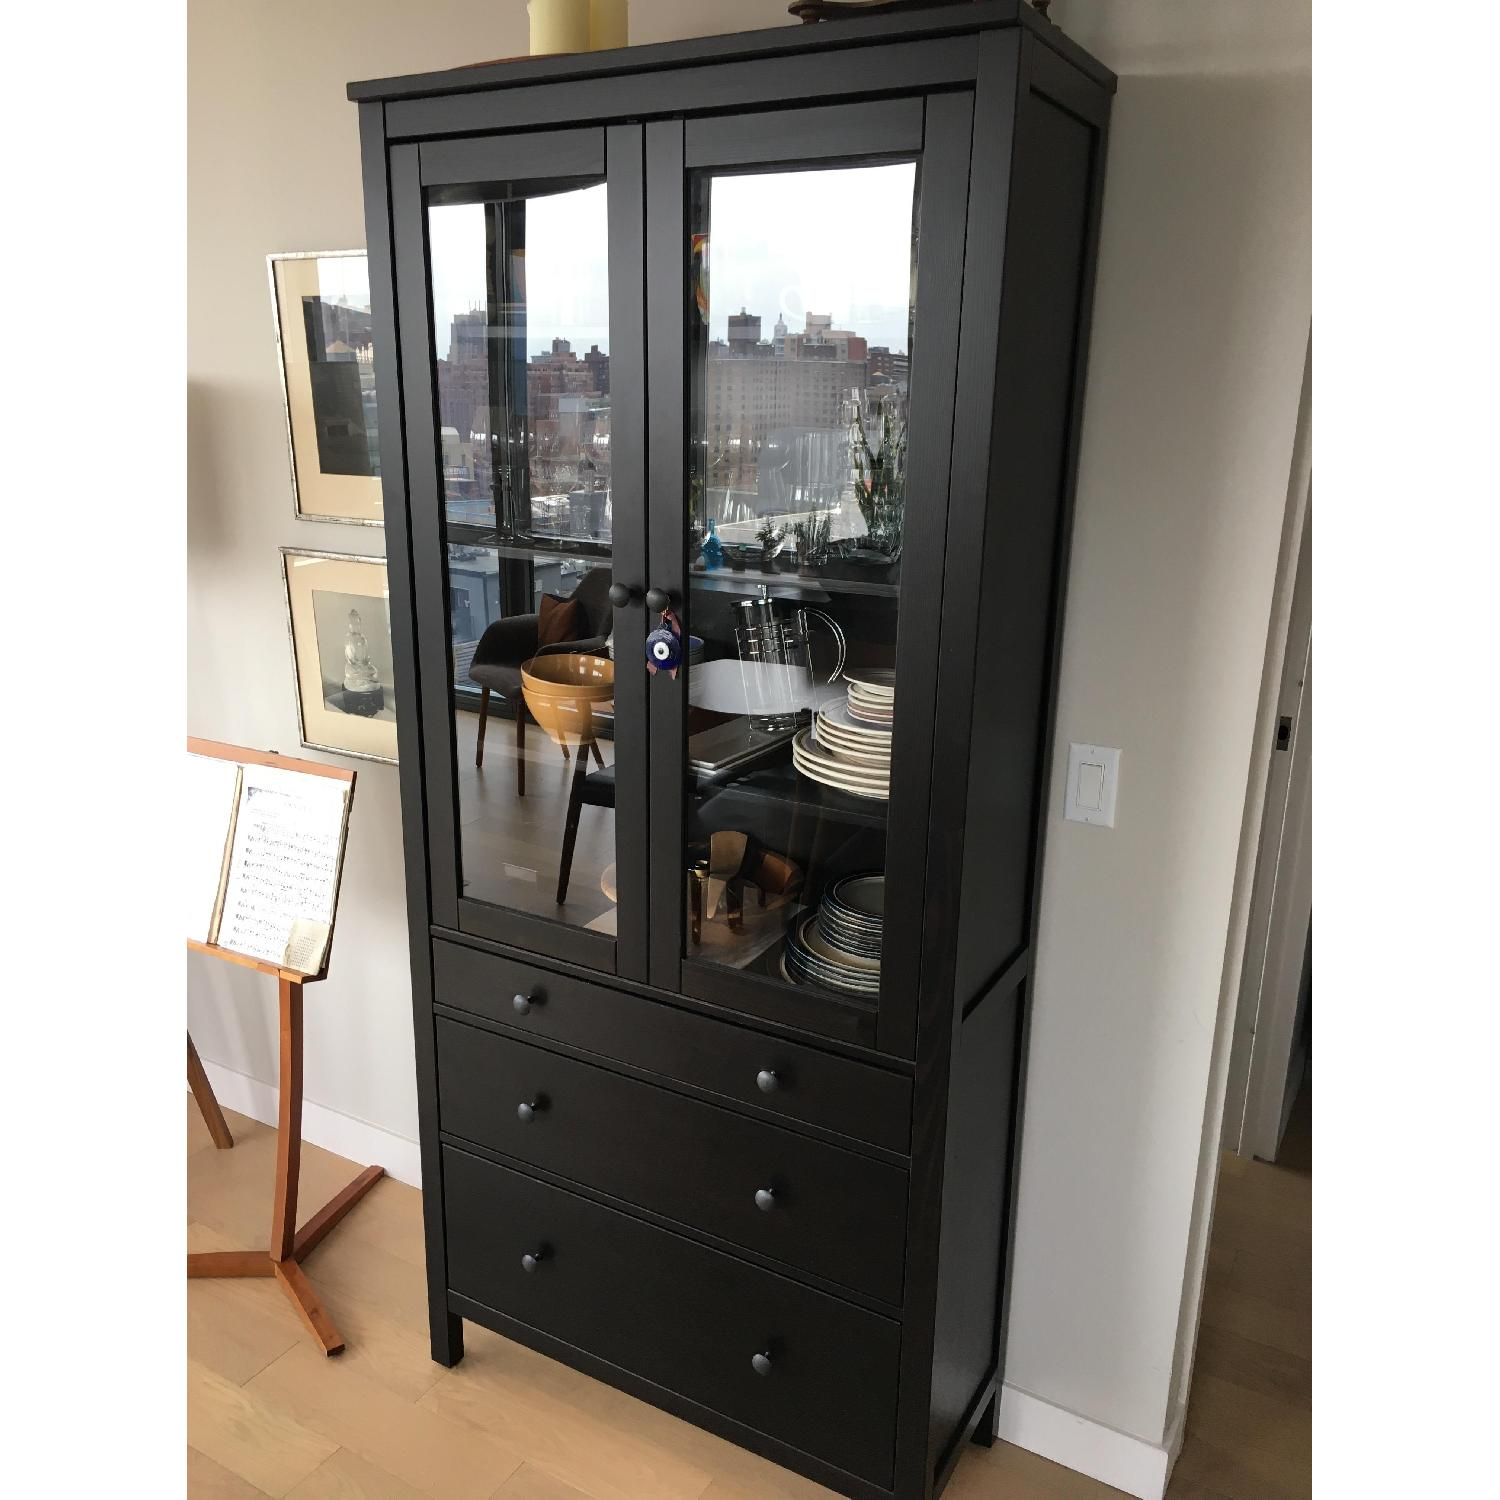 Ikea hemnes glass door cabinet w 3 drawers in aptdeco ikea hemnes glass door cabinet w 3 drawers in brown black 0 planetlyrics Choice Image